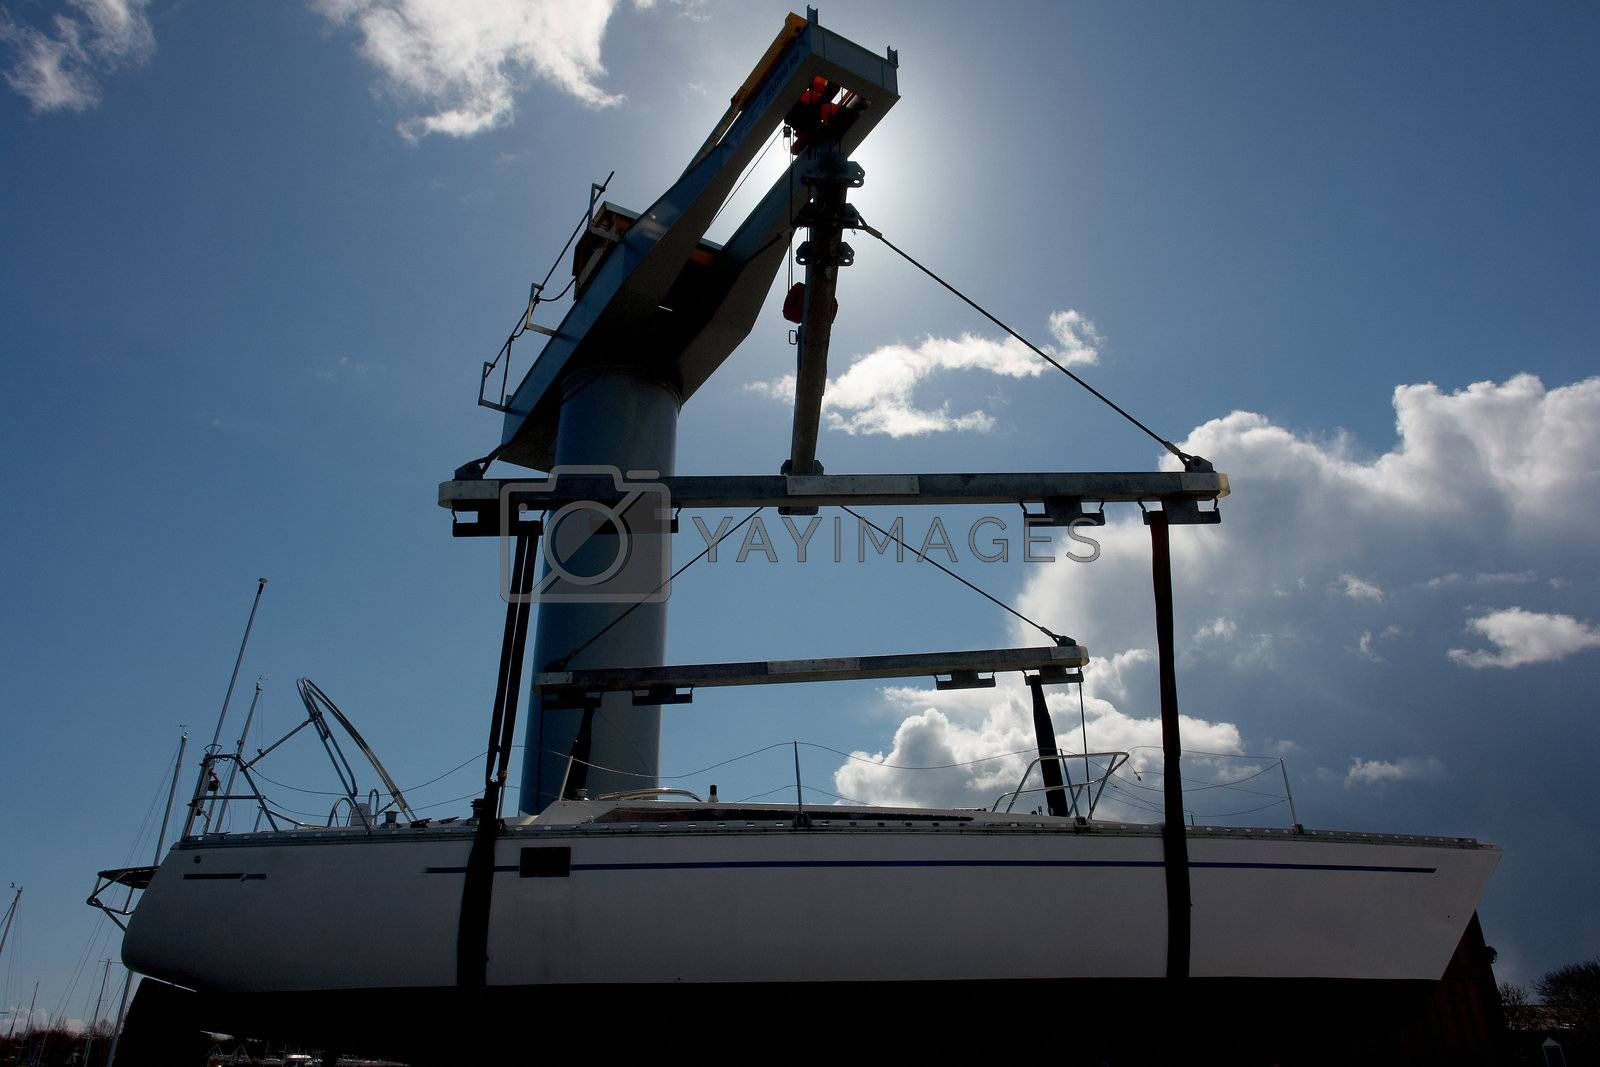 Sailboat lift up by a heavy industrial boat lifter for maintenance